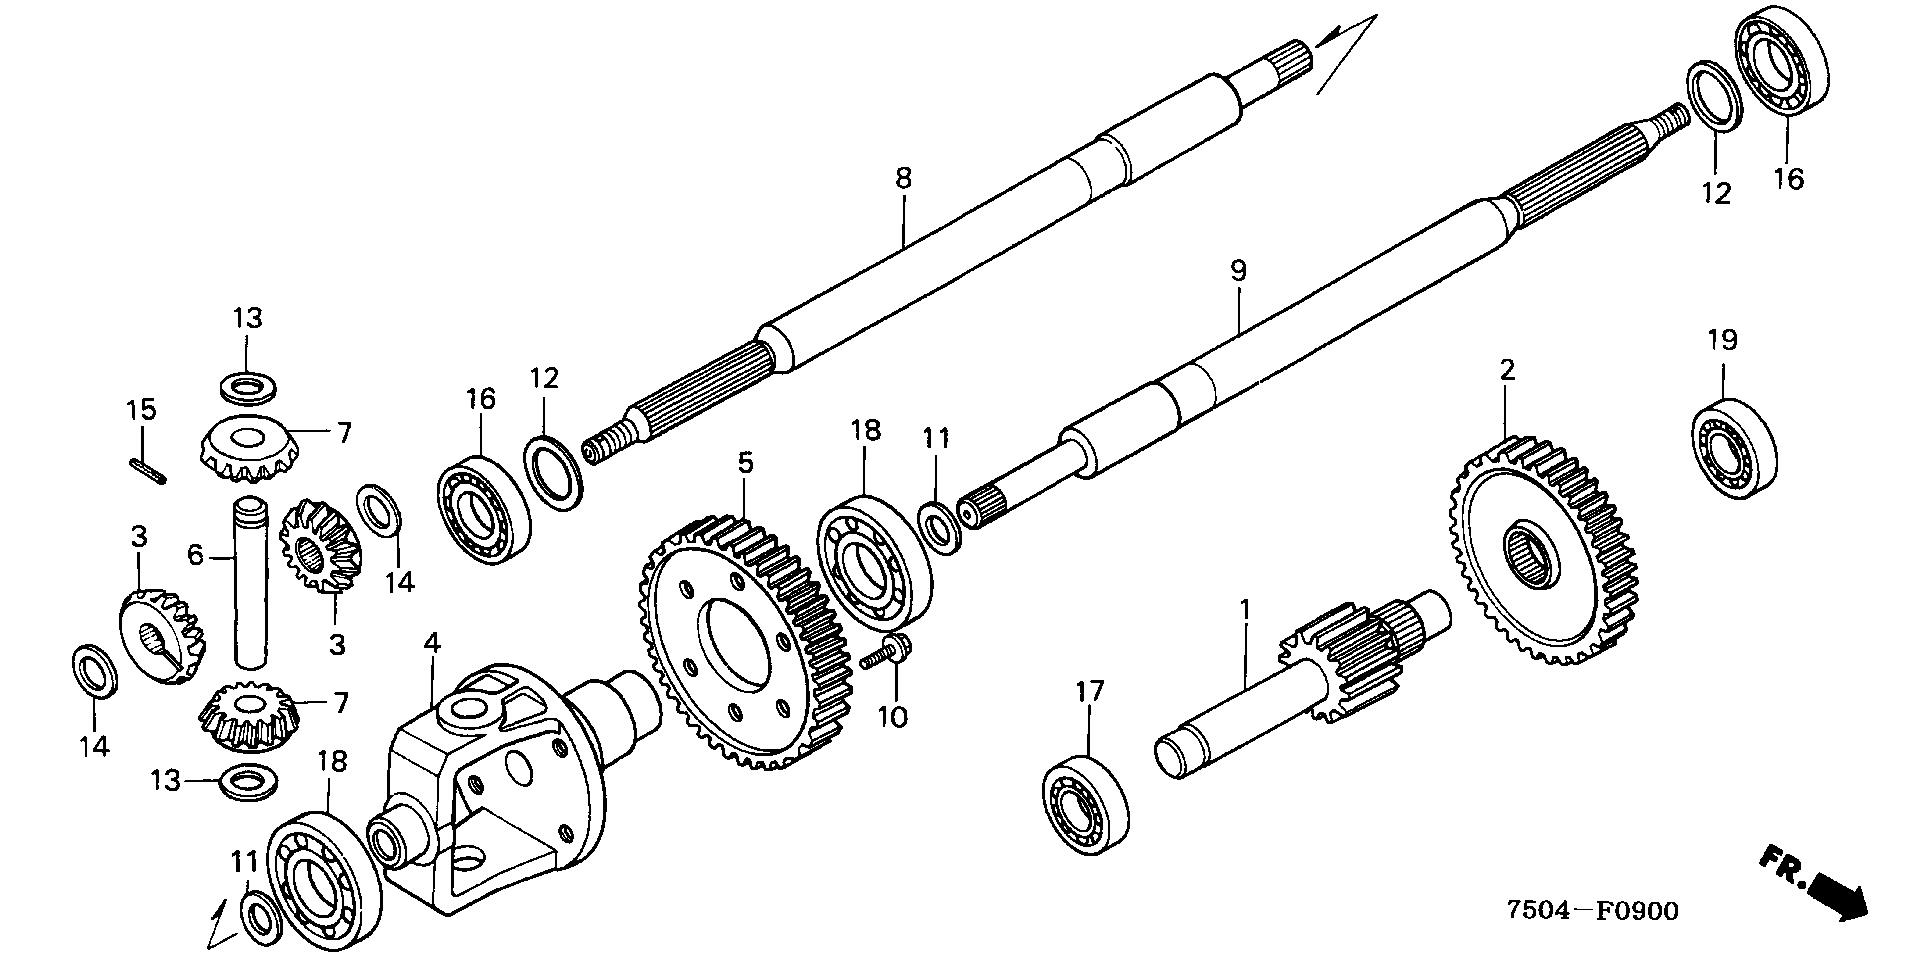 COUNTERSHAFT@DIFFERENTIAL GEAR